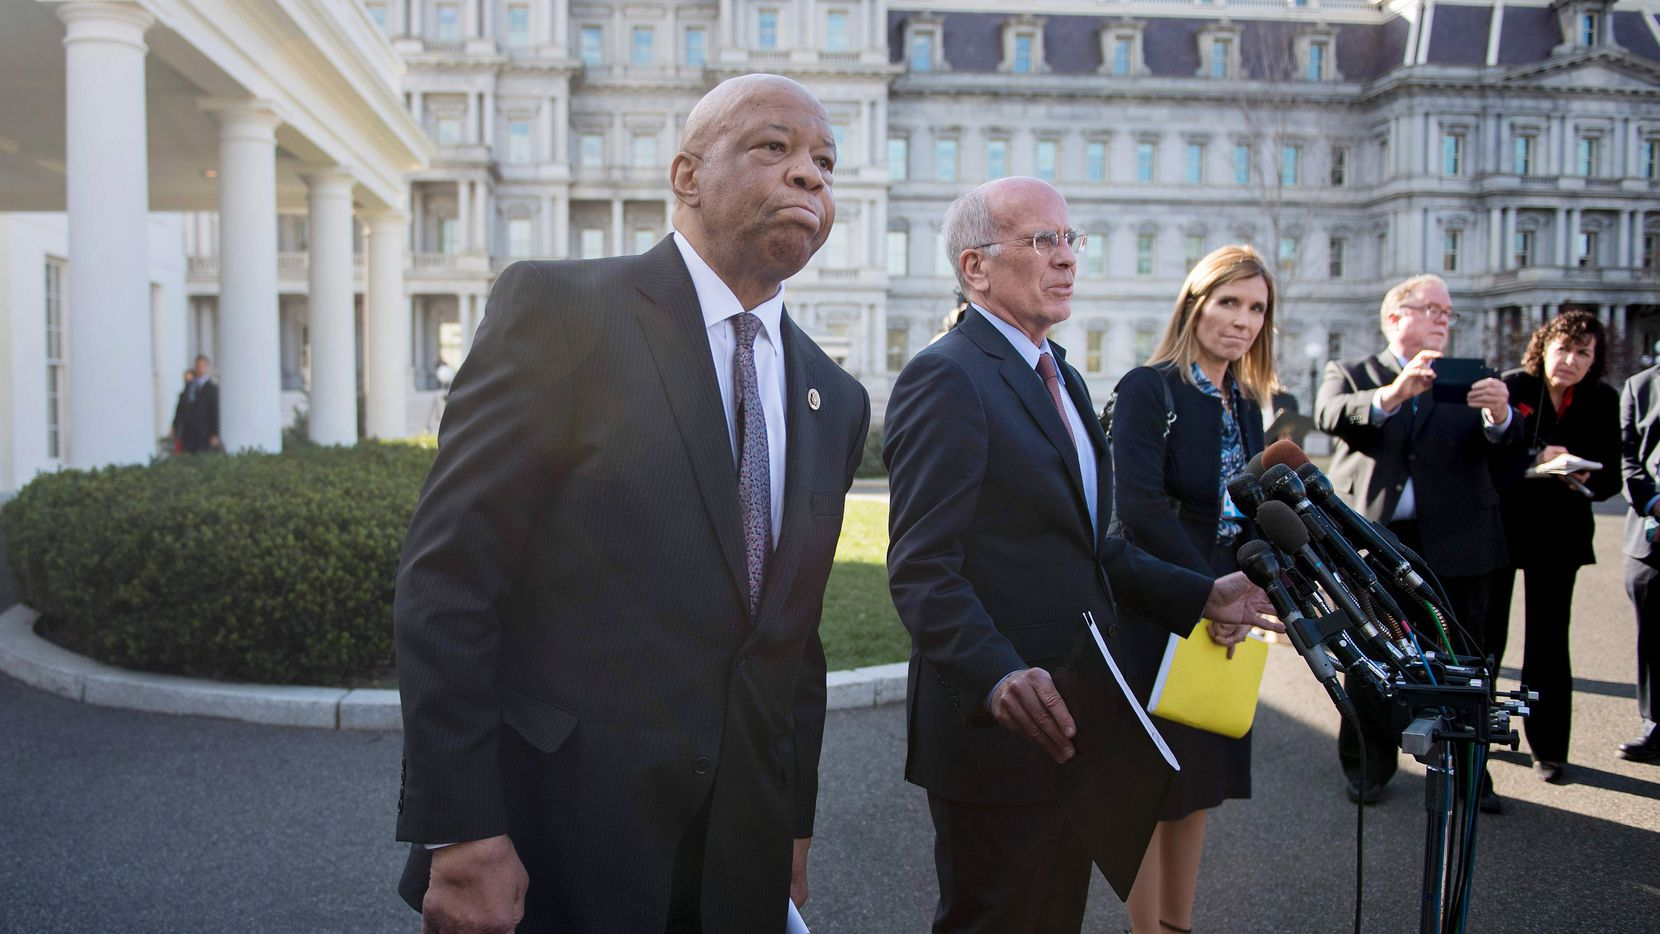 US Congressman Elijah Cummings (L), D-Maryland, and US Congressman Peter Welch (C), D-Vermont, speak at the White House in Washington, DC, March 8, 2017, after a meeting with US President Donald Trump.